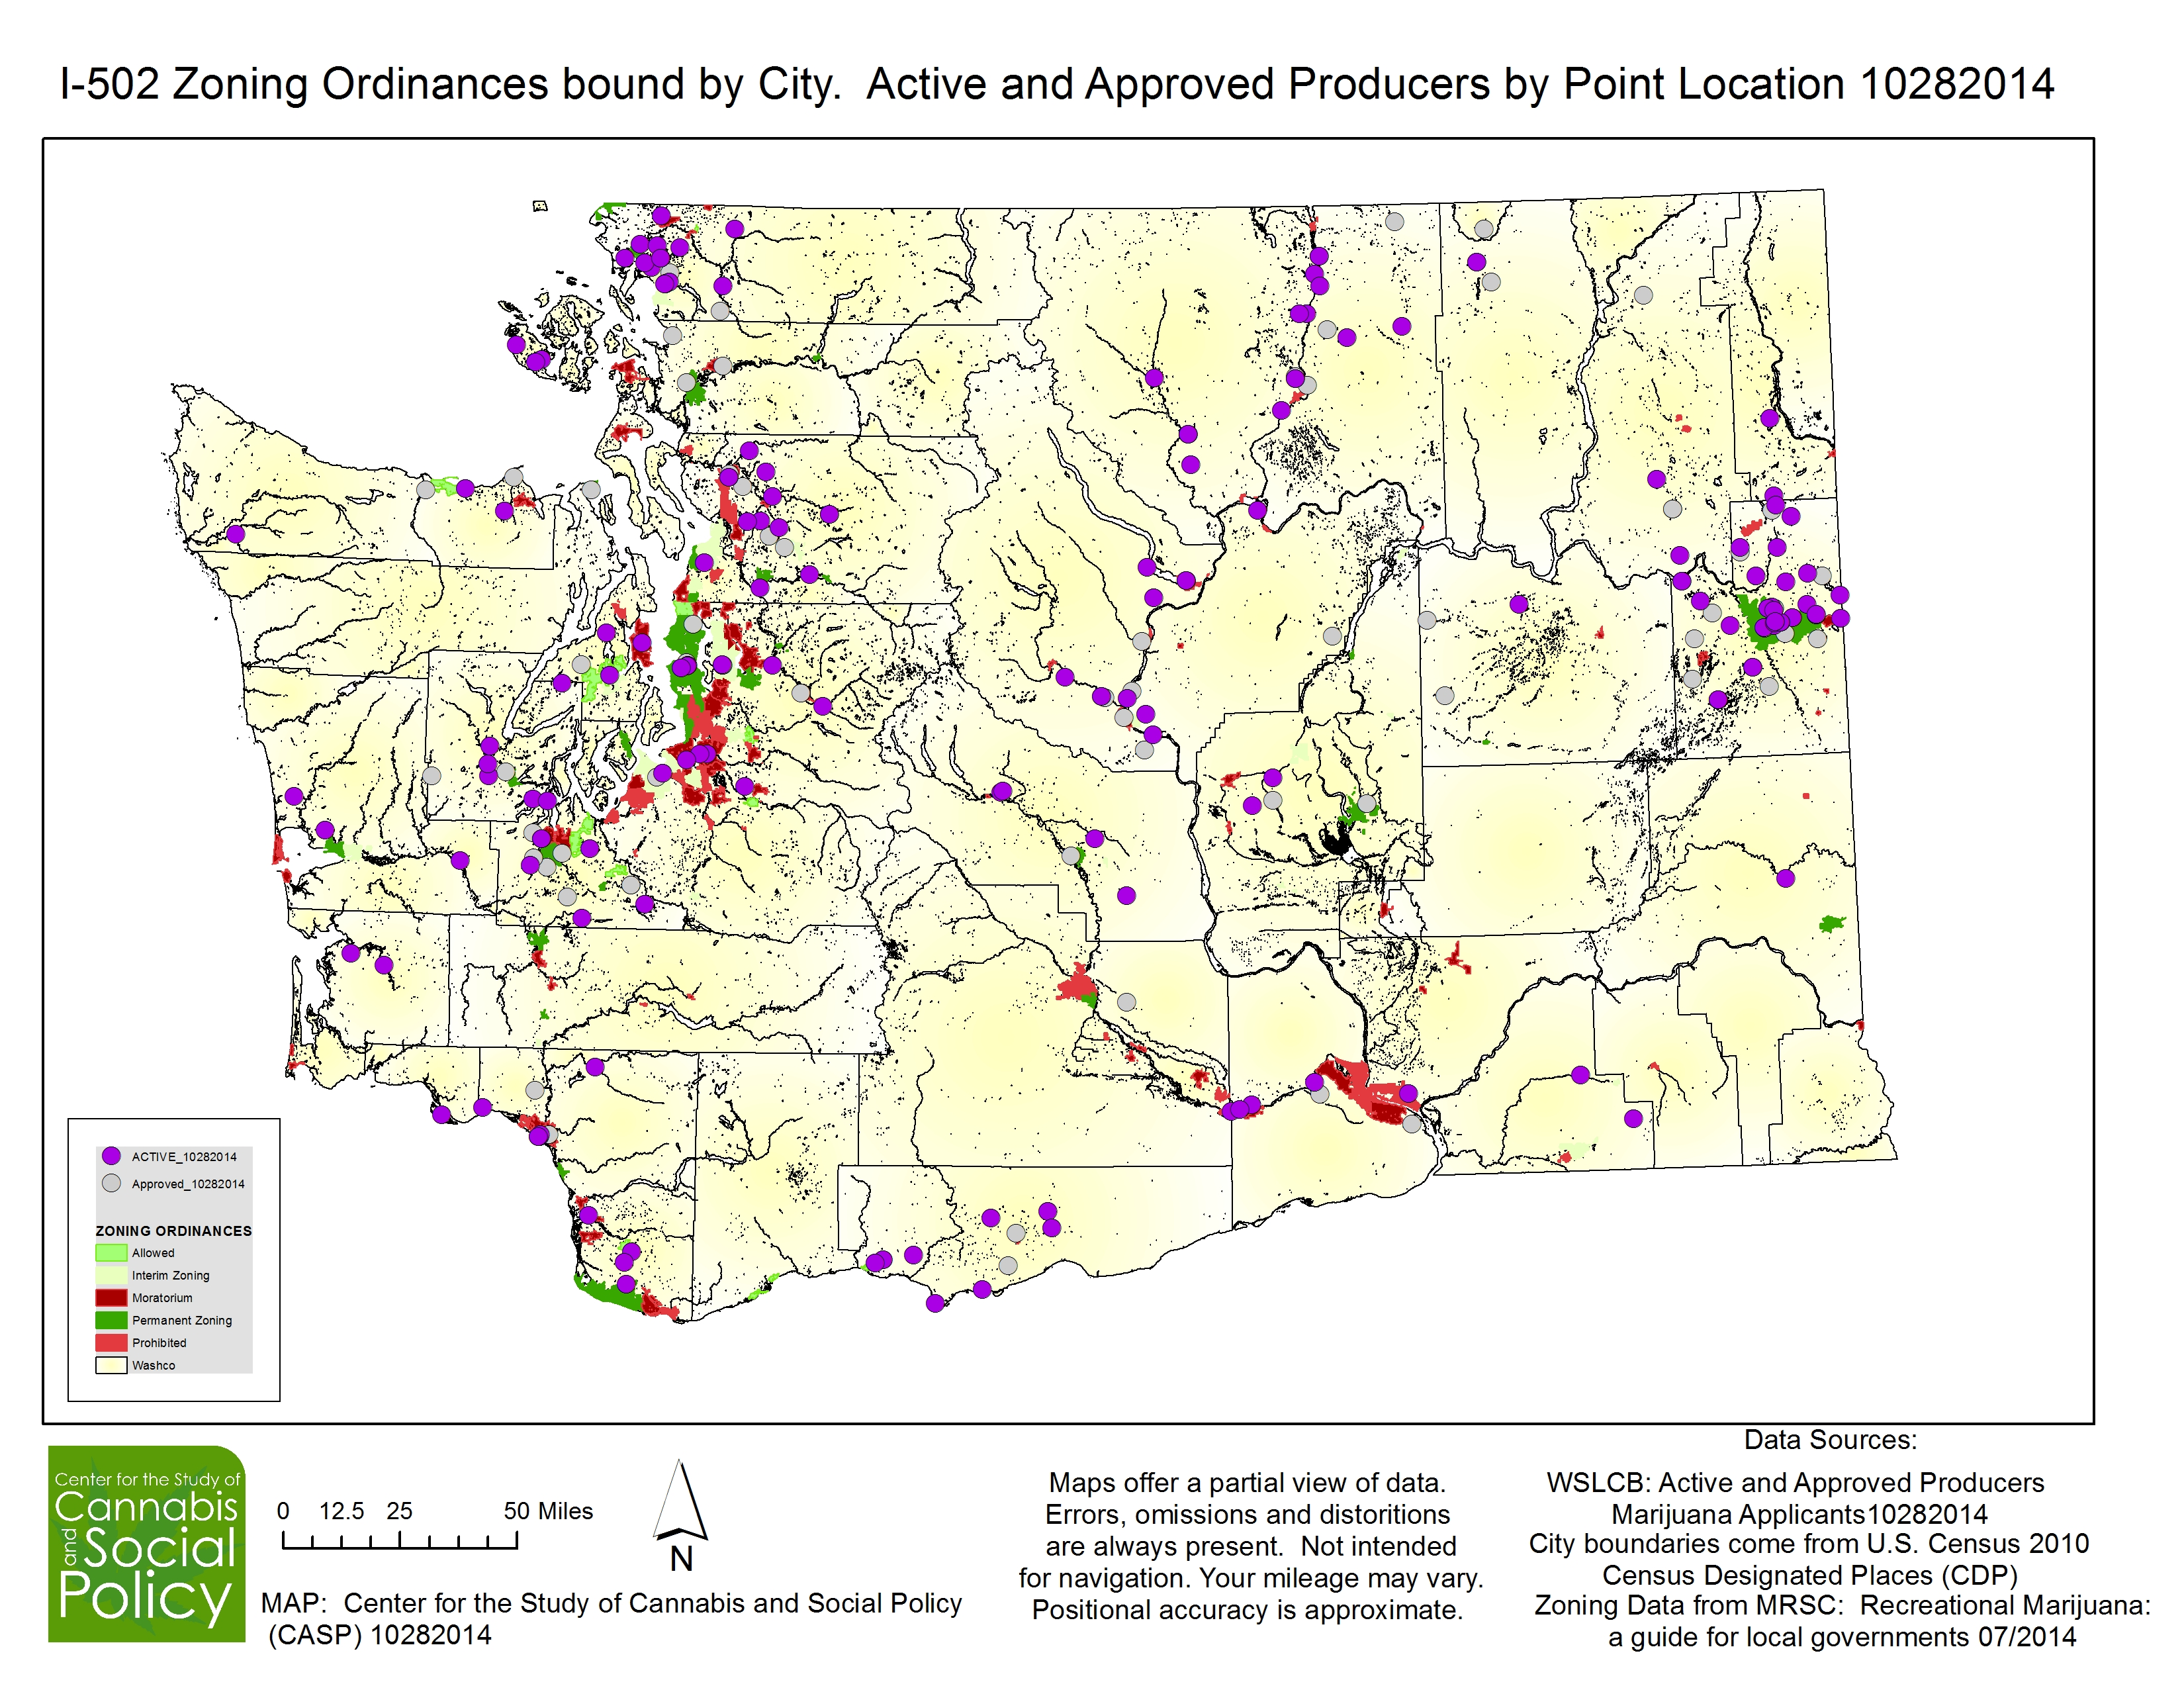 I-502 Zoning Ordinances bound by City.  Active and Approved Producers by Point Location 10282014